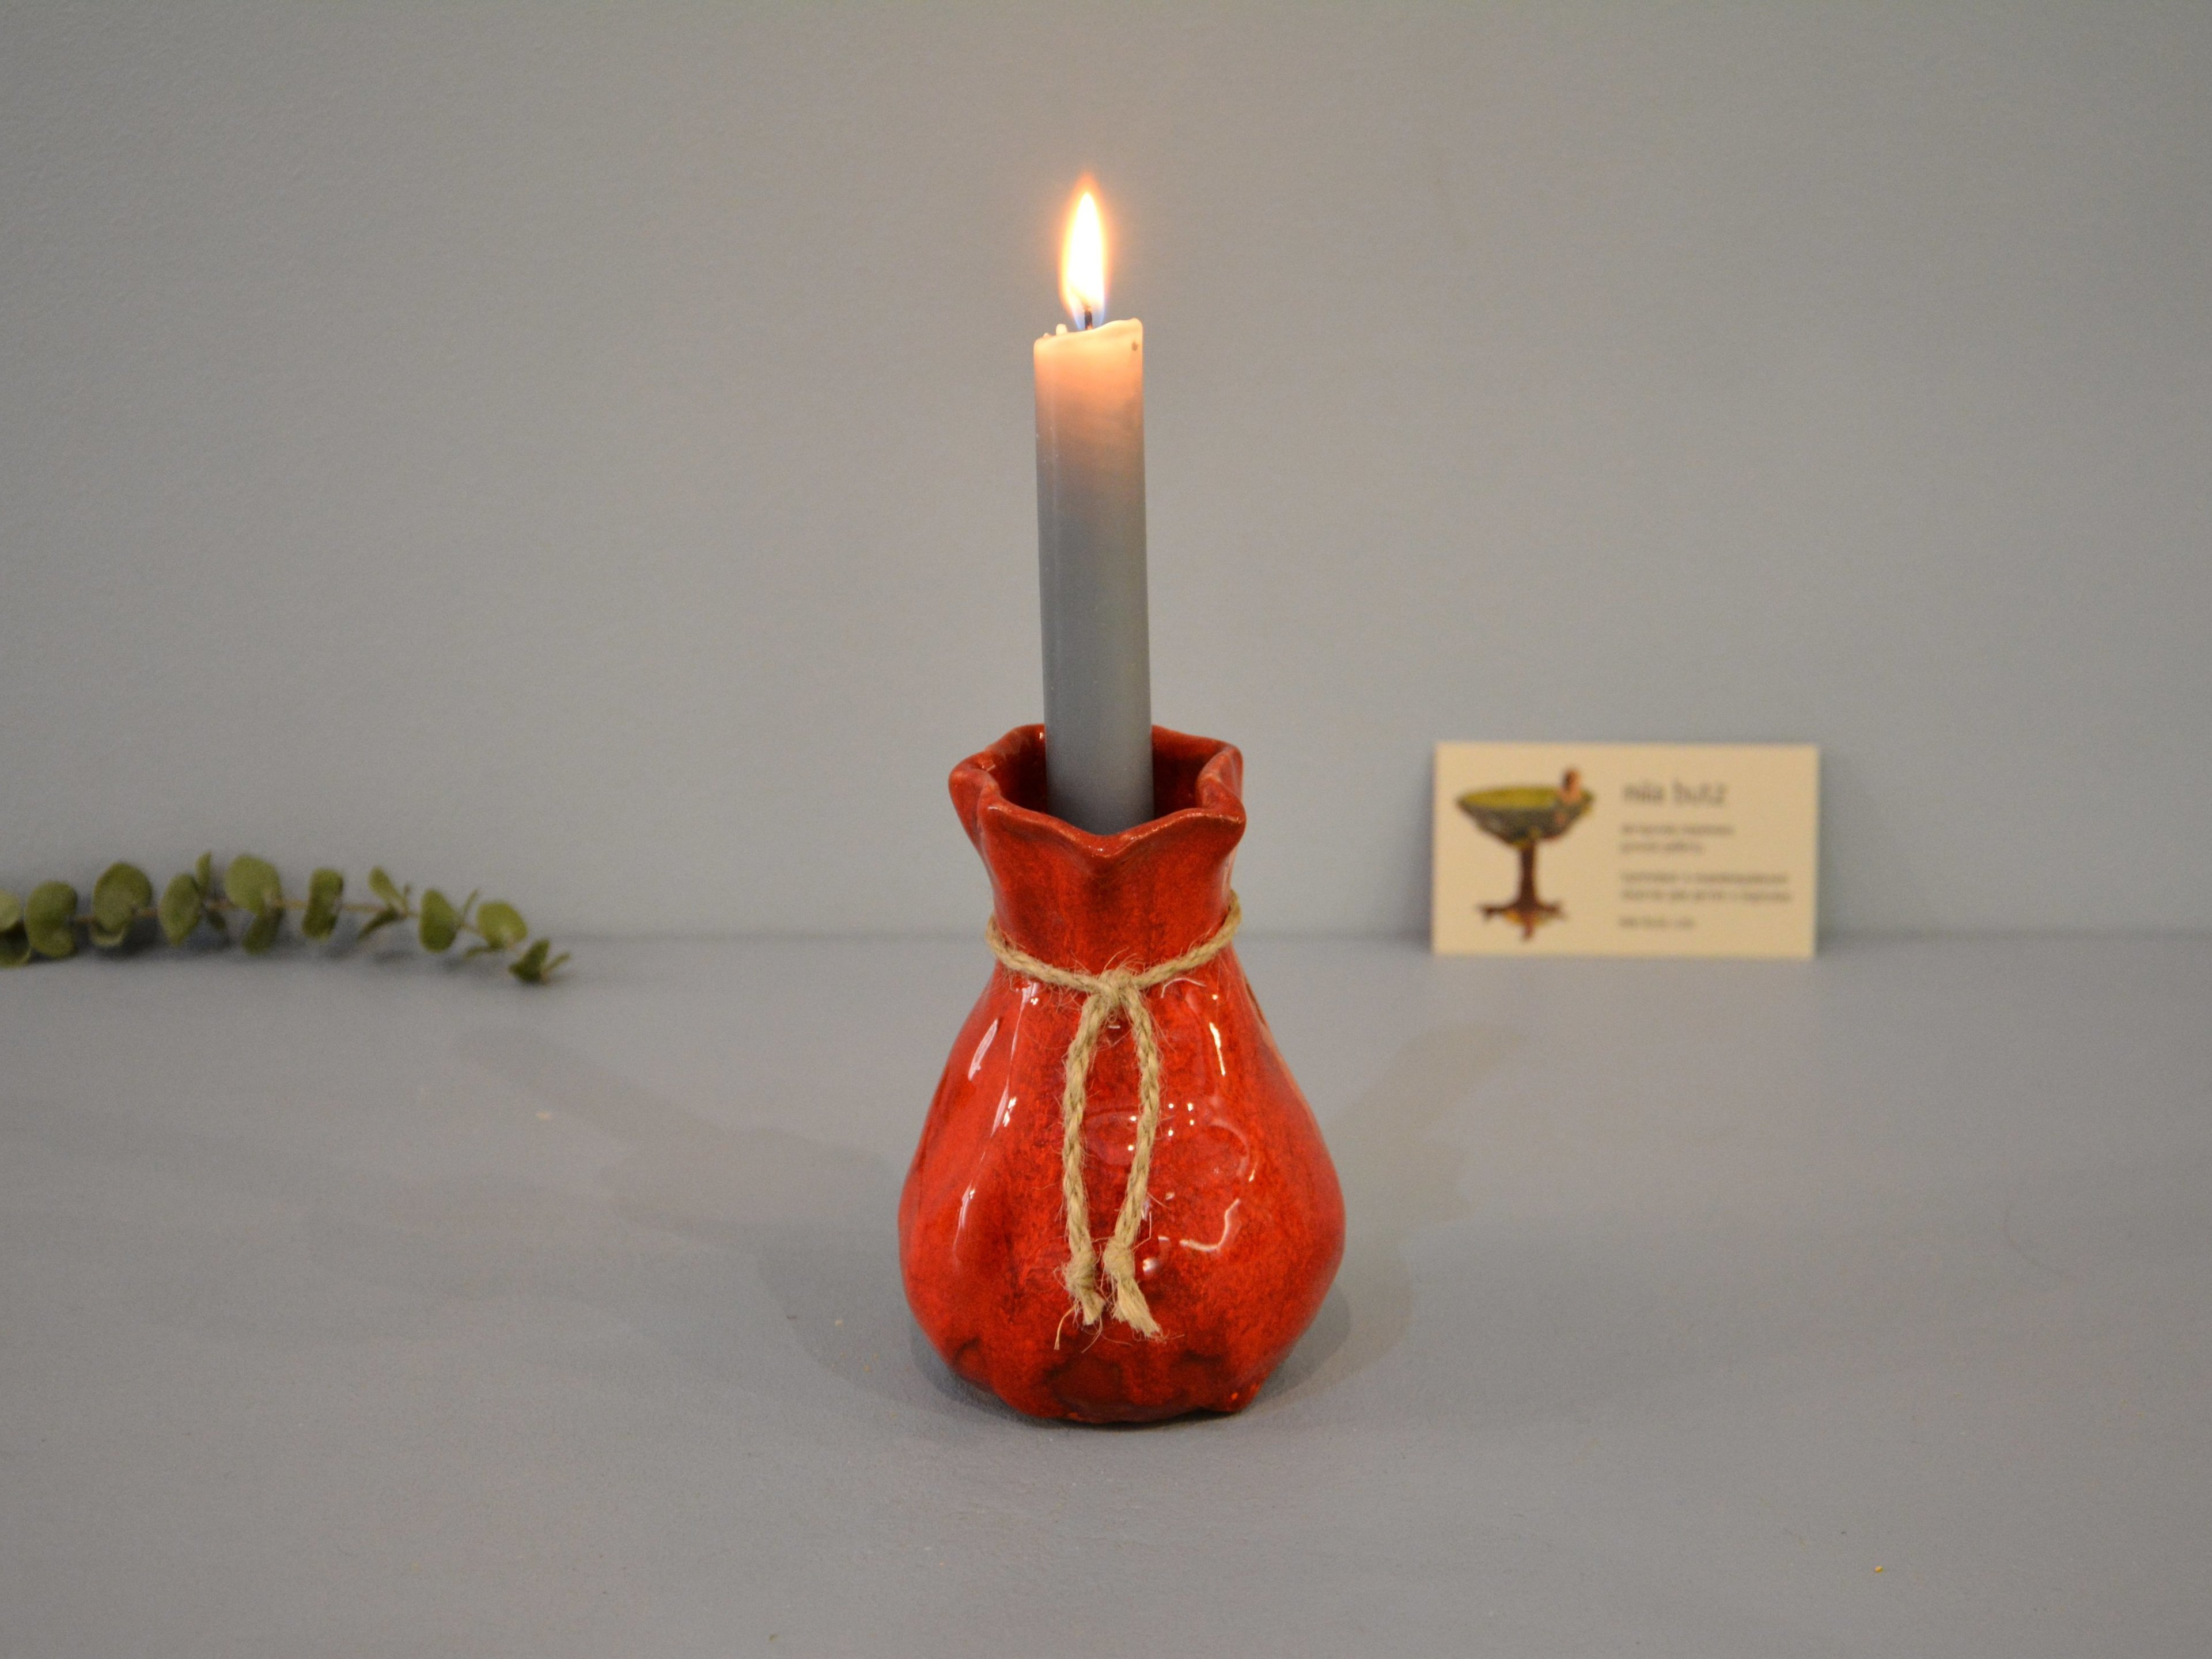 Candle vase «Red Bagful», height - 12 cm, color - red. Photo 1423-3840-2880.